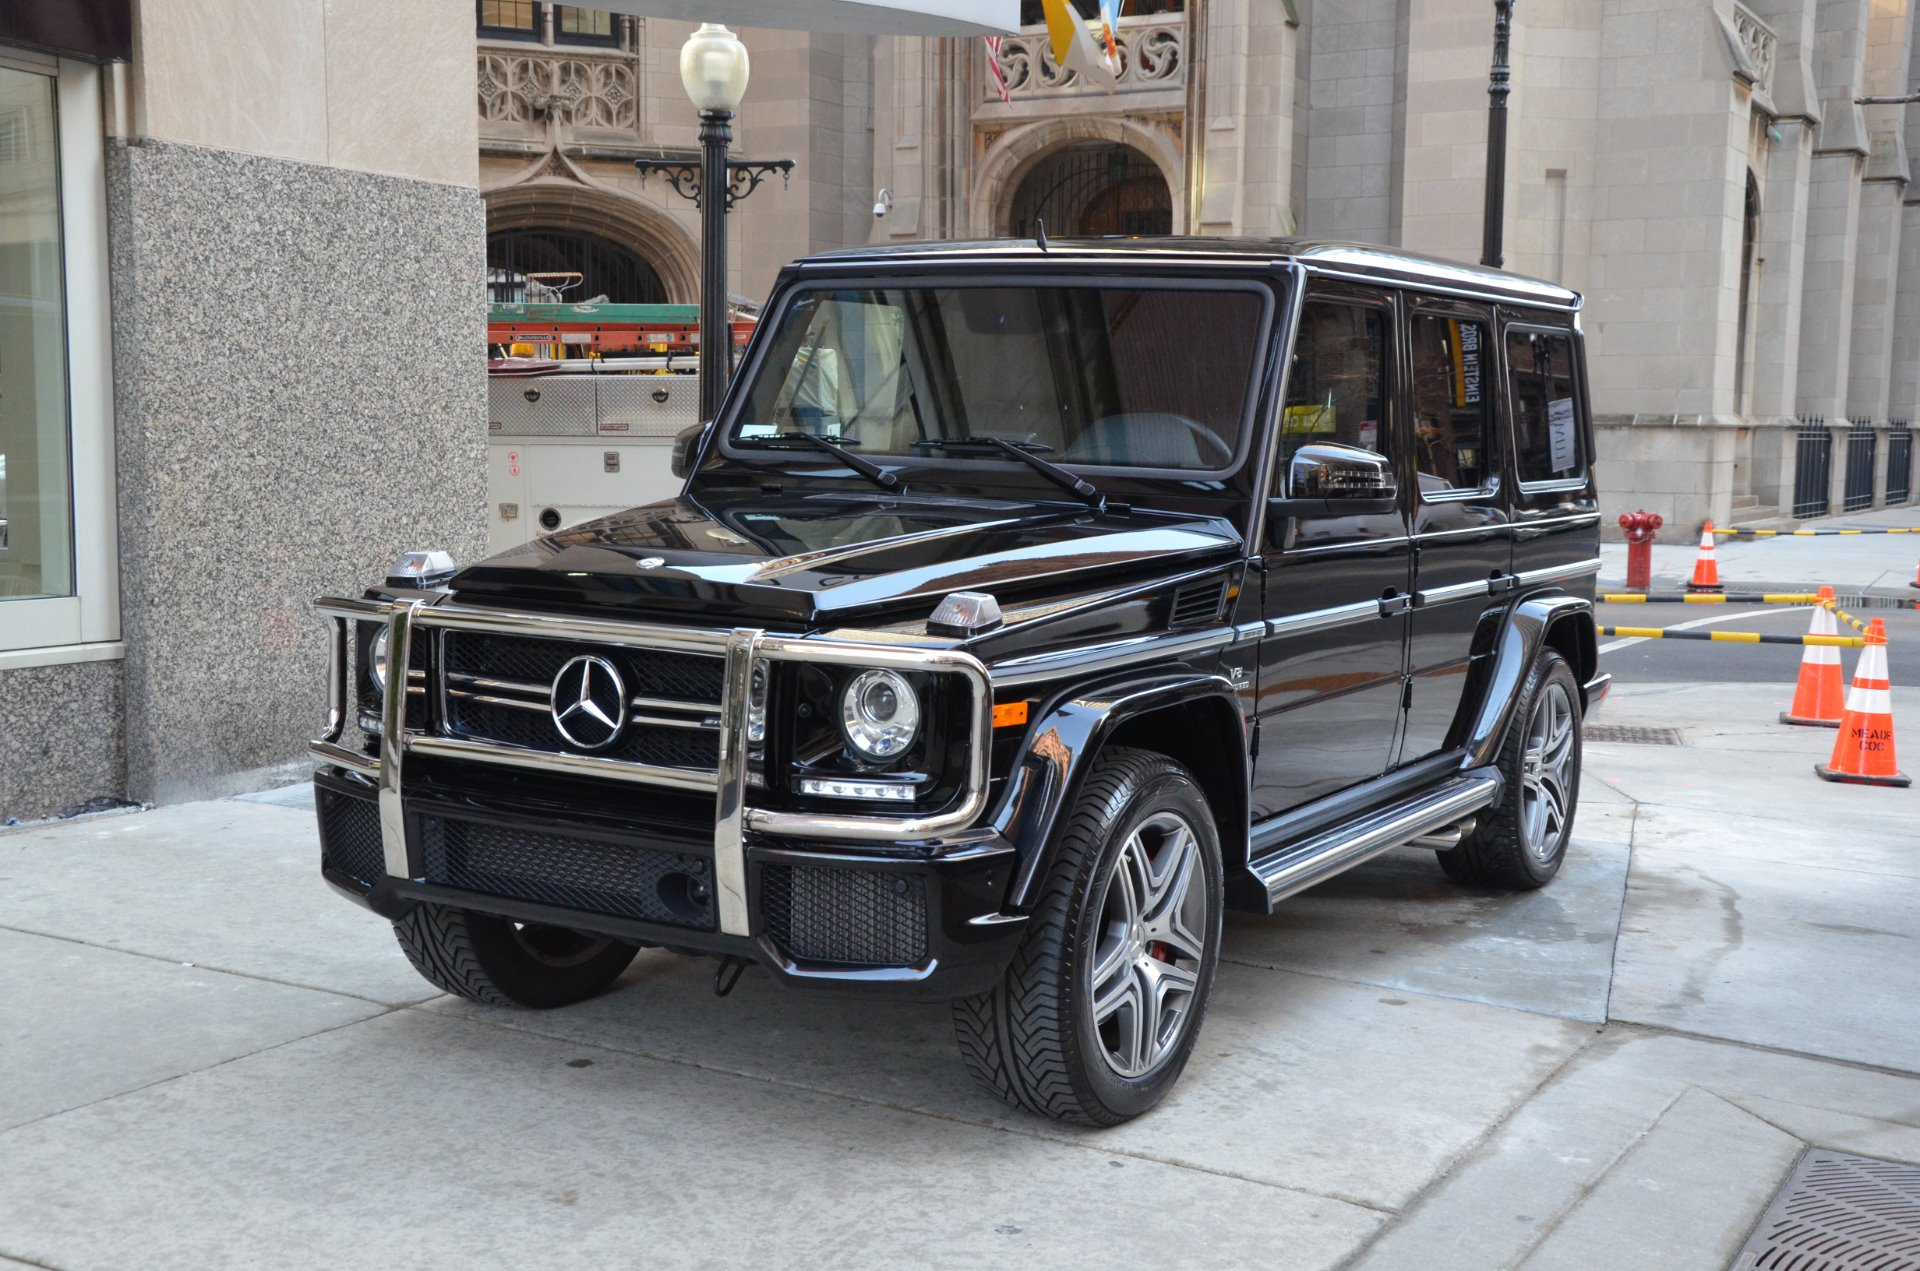 2016 mercedes benz g class g63 amg stock m485a for sale for Mercedes benz g63 amg for sale